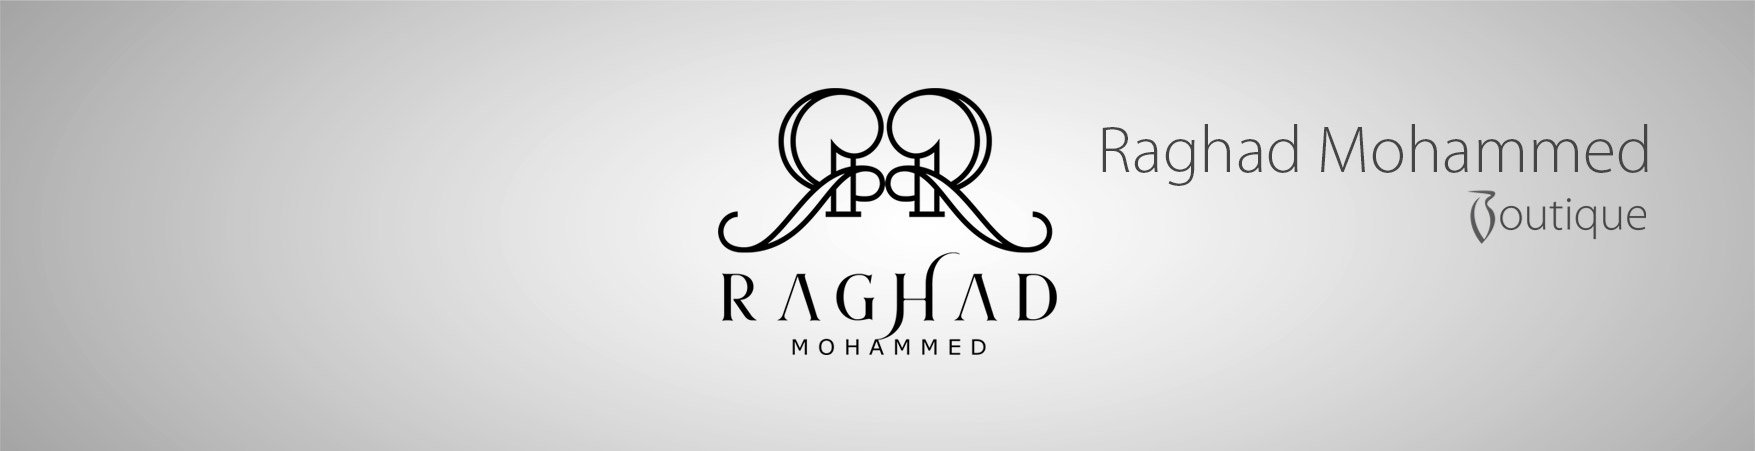 Raghad Mohammed Boutique